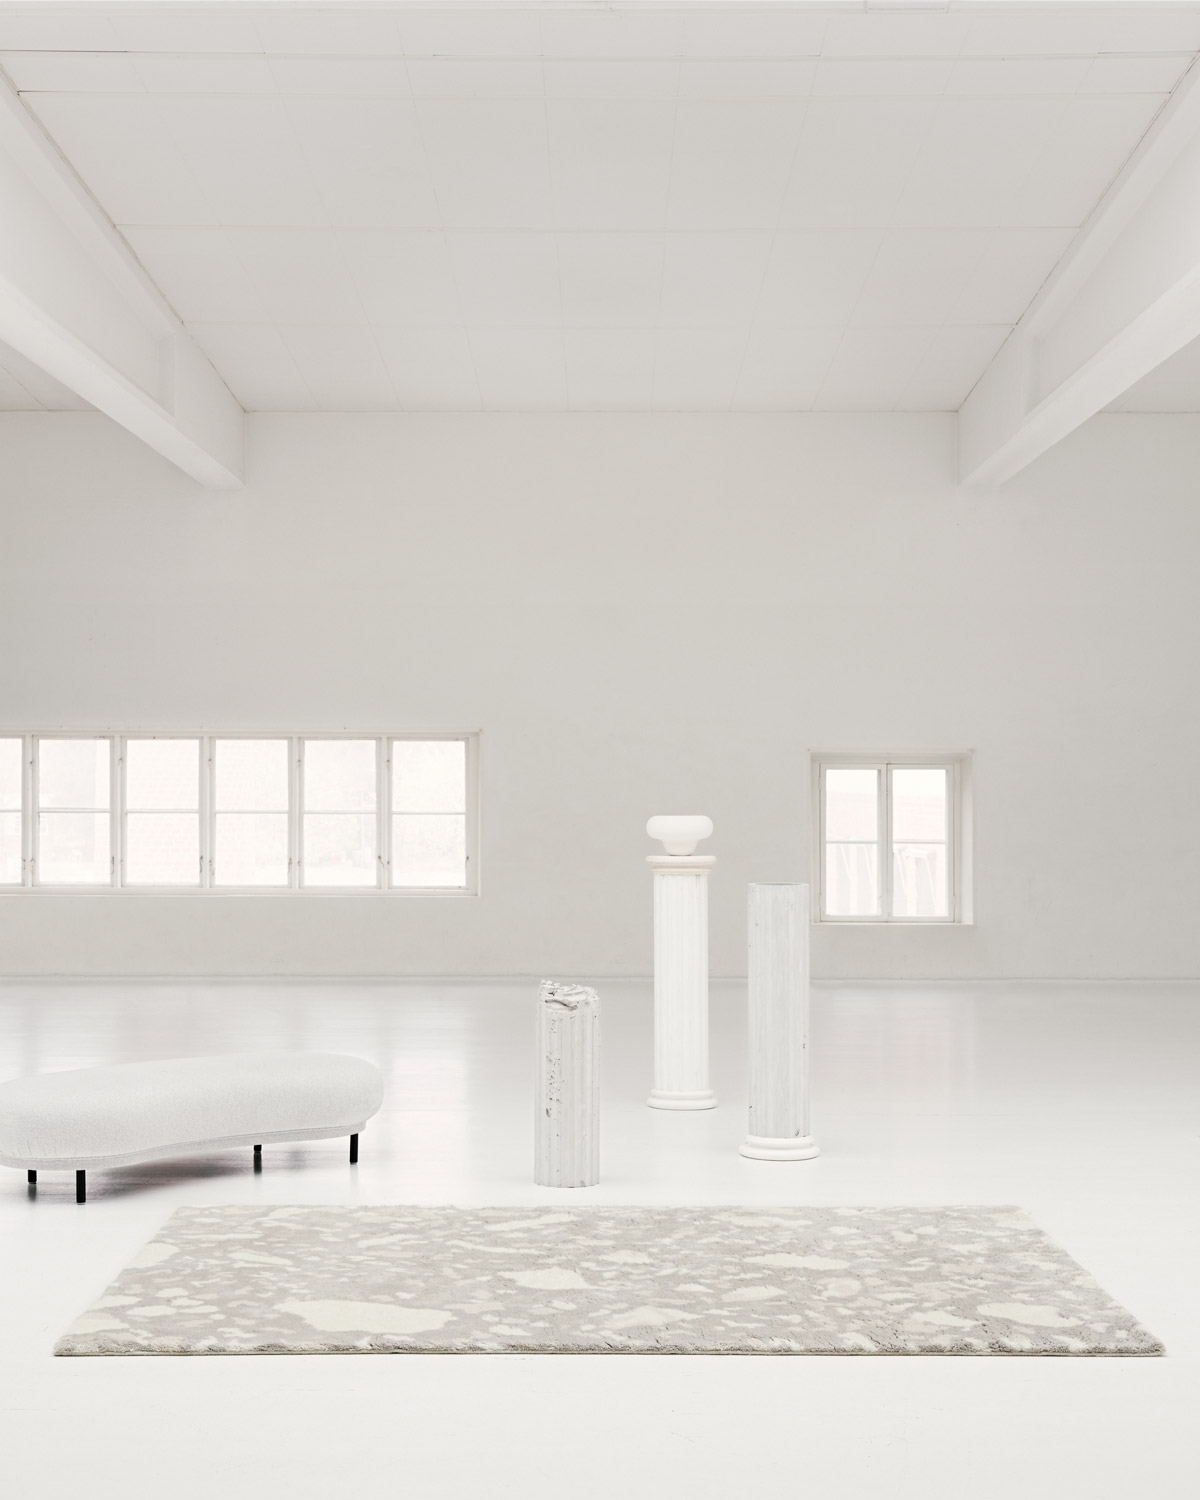 The shaggy Archipelago rug in Oatmeal in a white, contemporary setting with a rounded bench as well as some pillars.